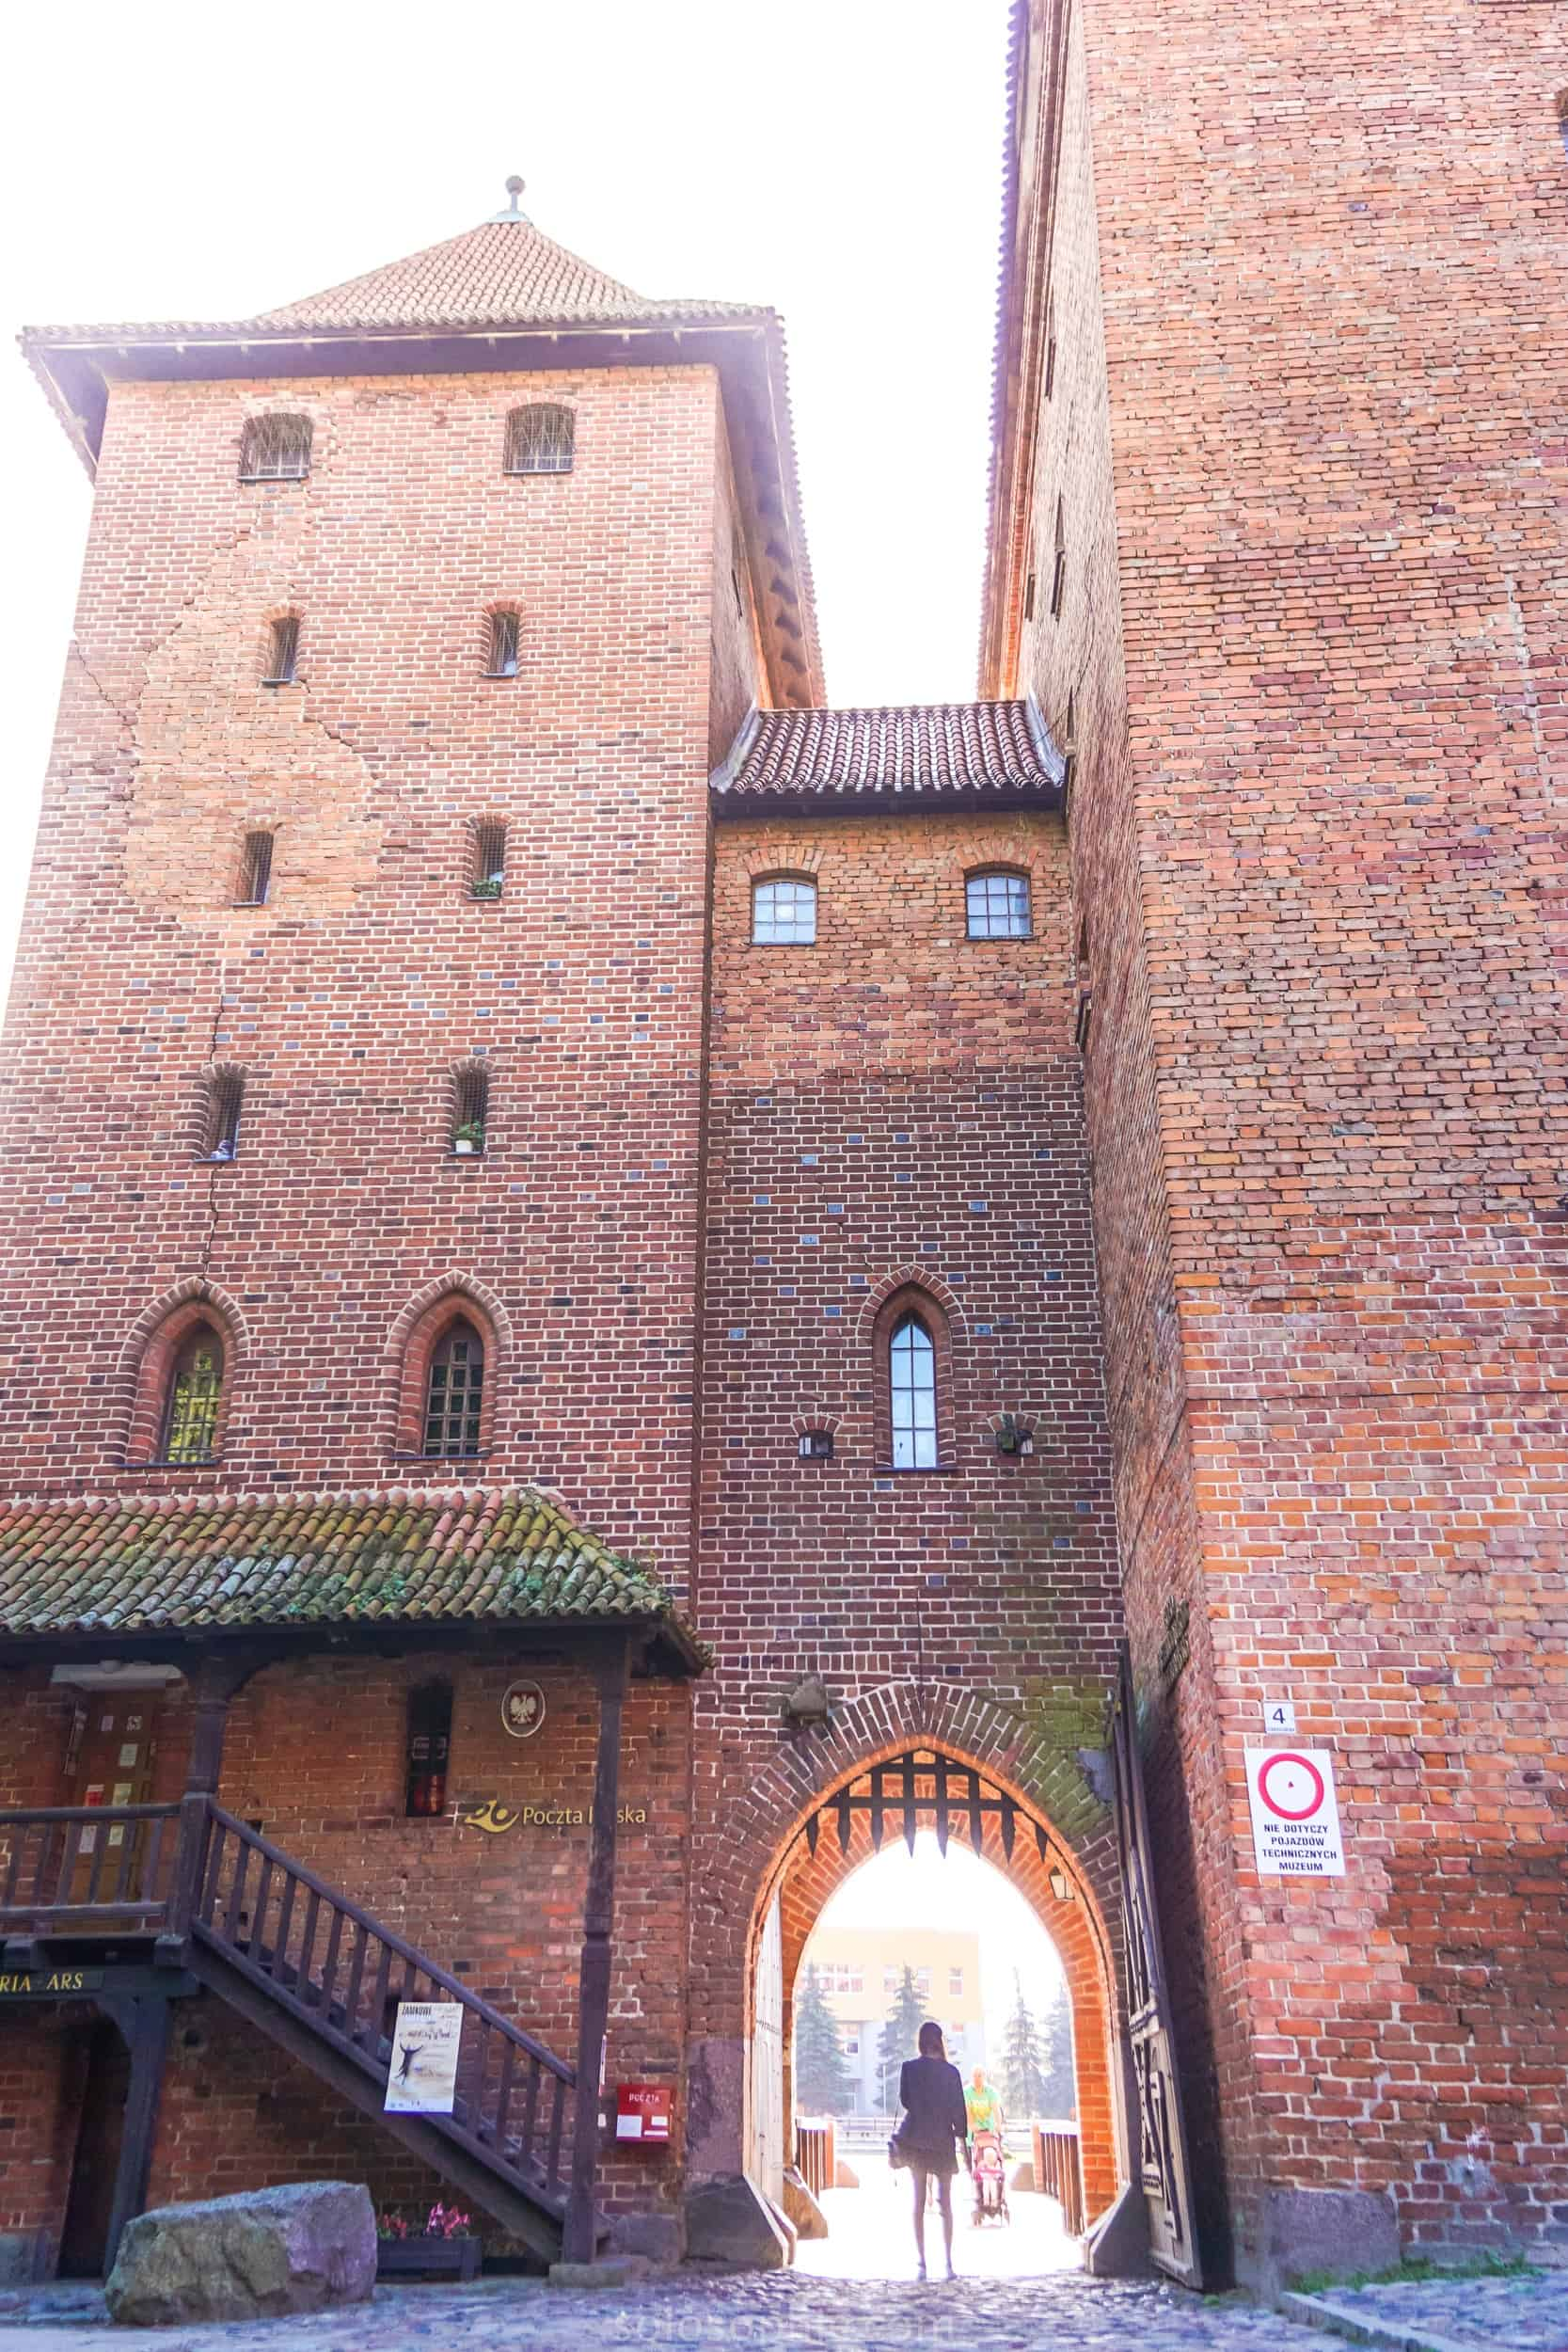 Visiting the largest Castle in the world: Malbork Castle, an easy day trip from Gdańsk, Poland